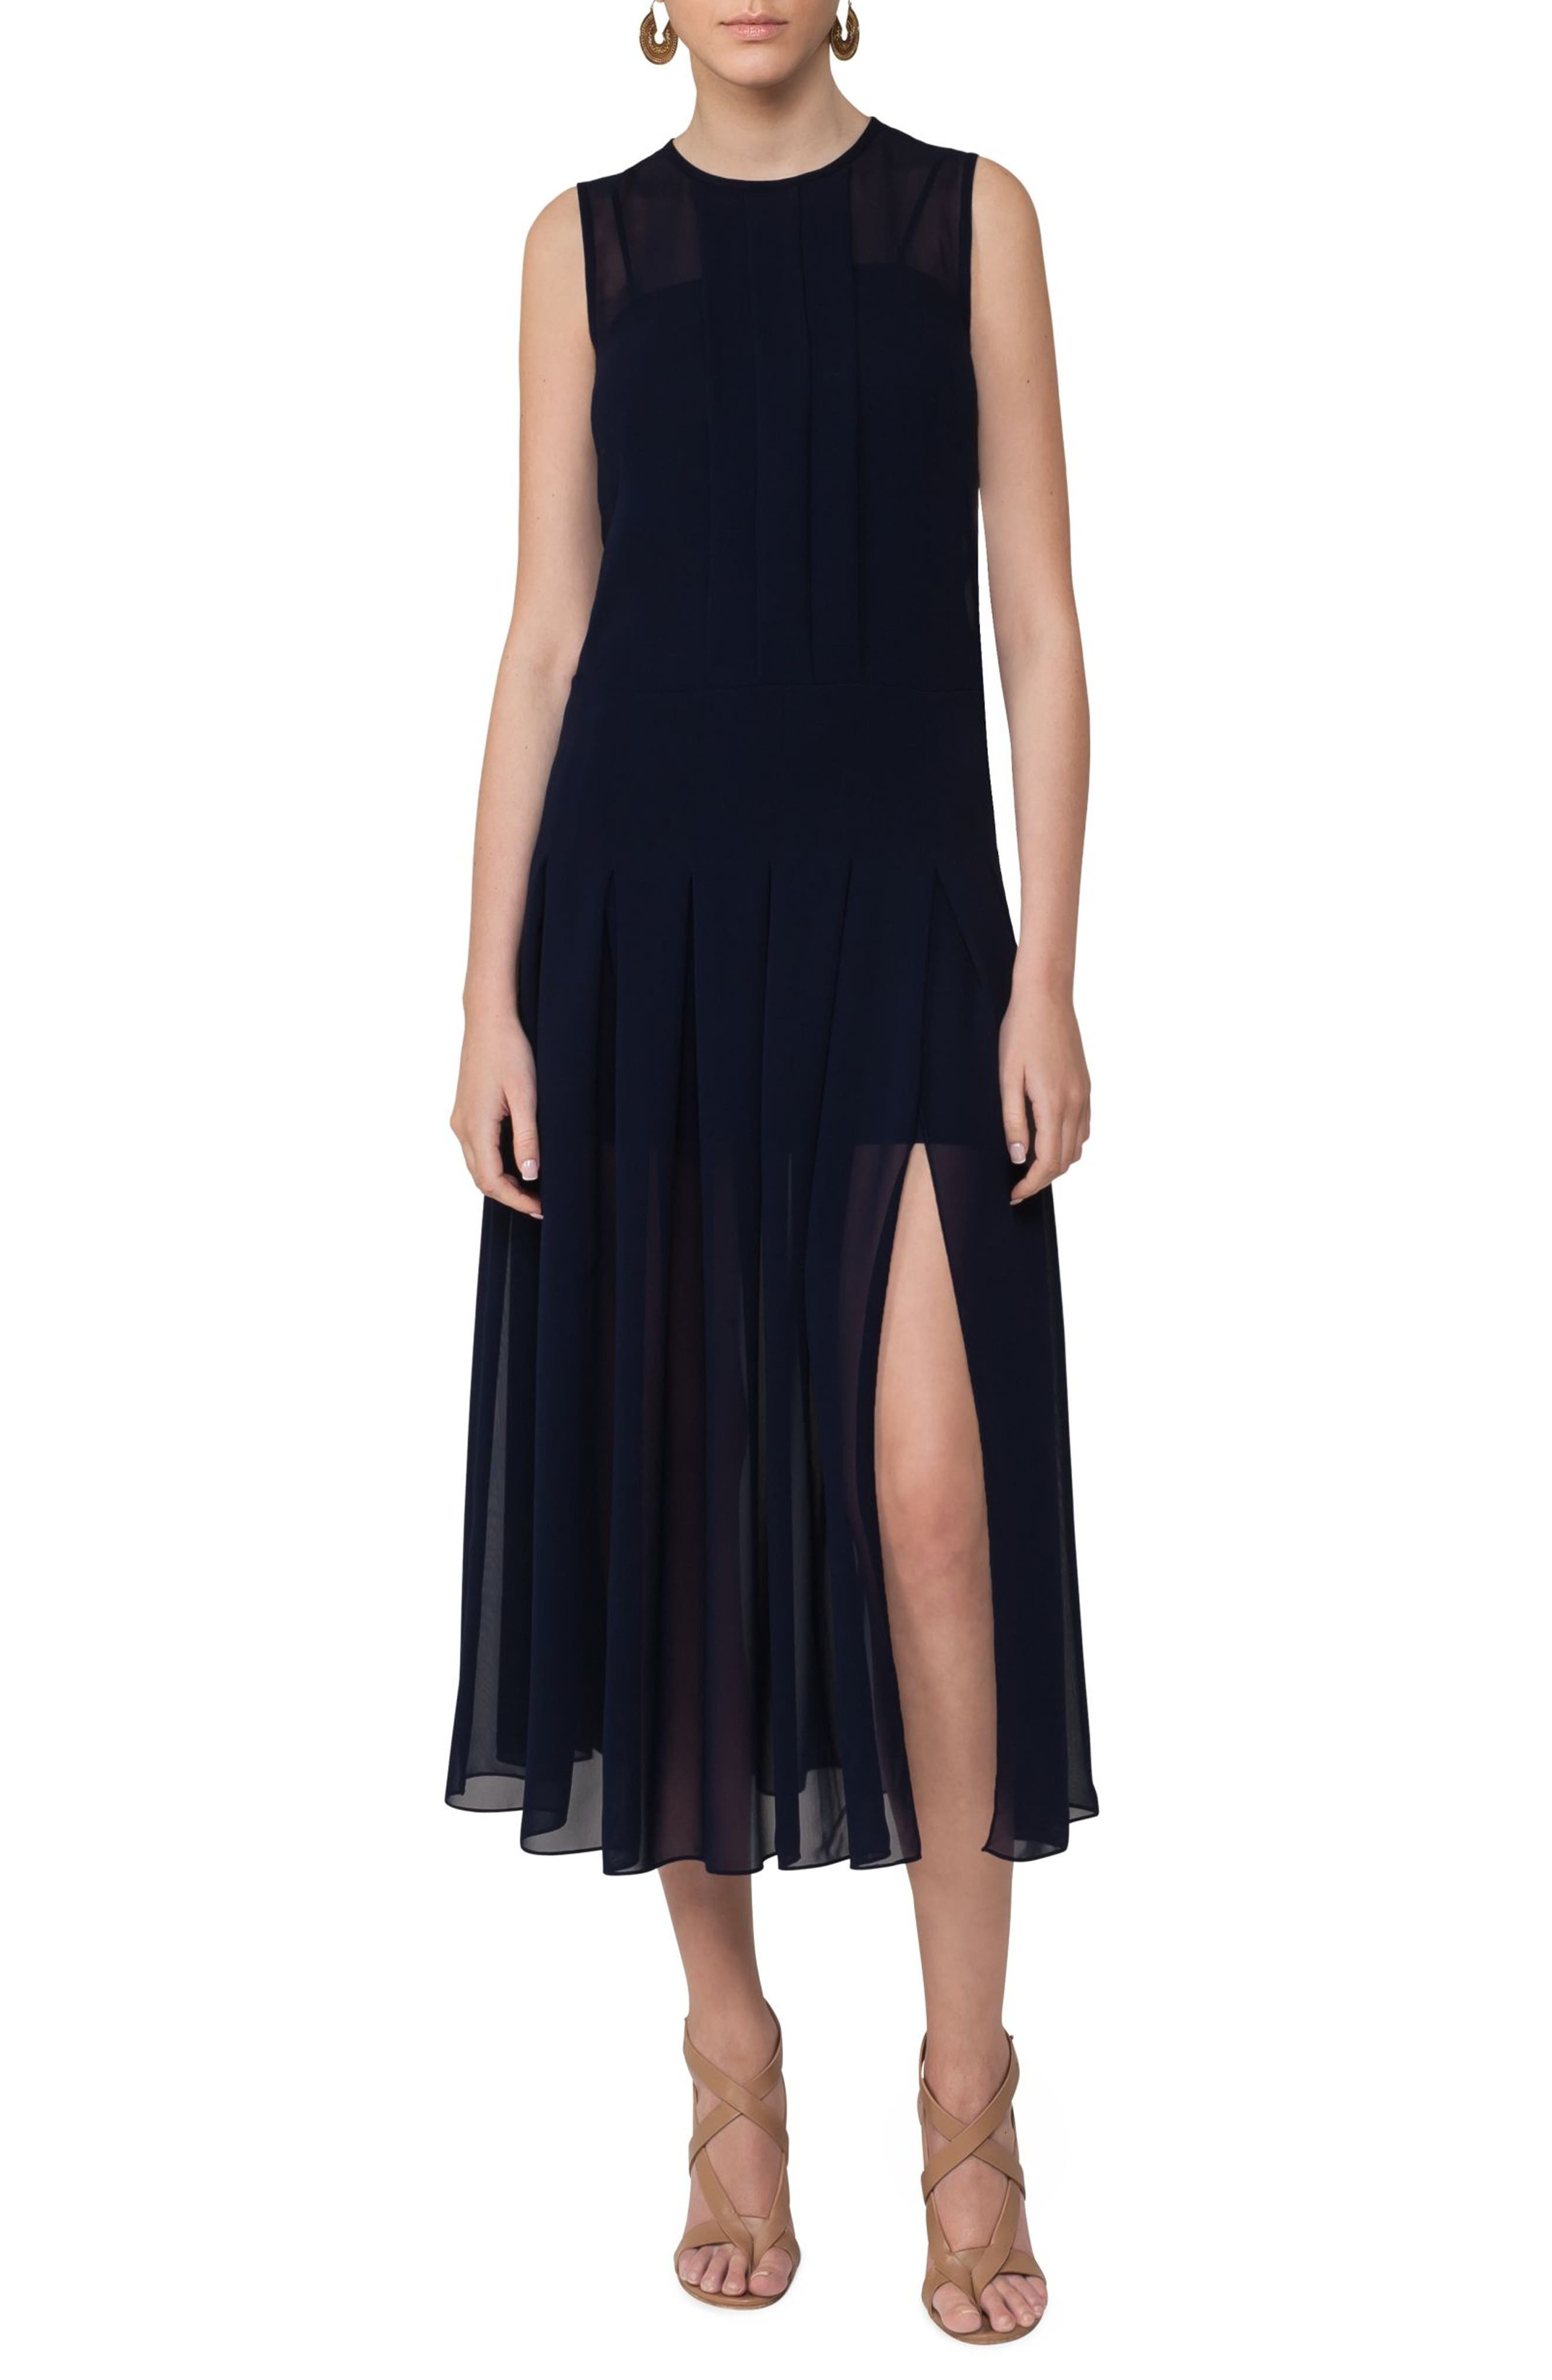 Alternate Image 1 Selected - Akris punto Sheer Pleat Midi Dress